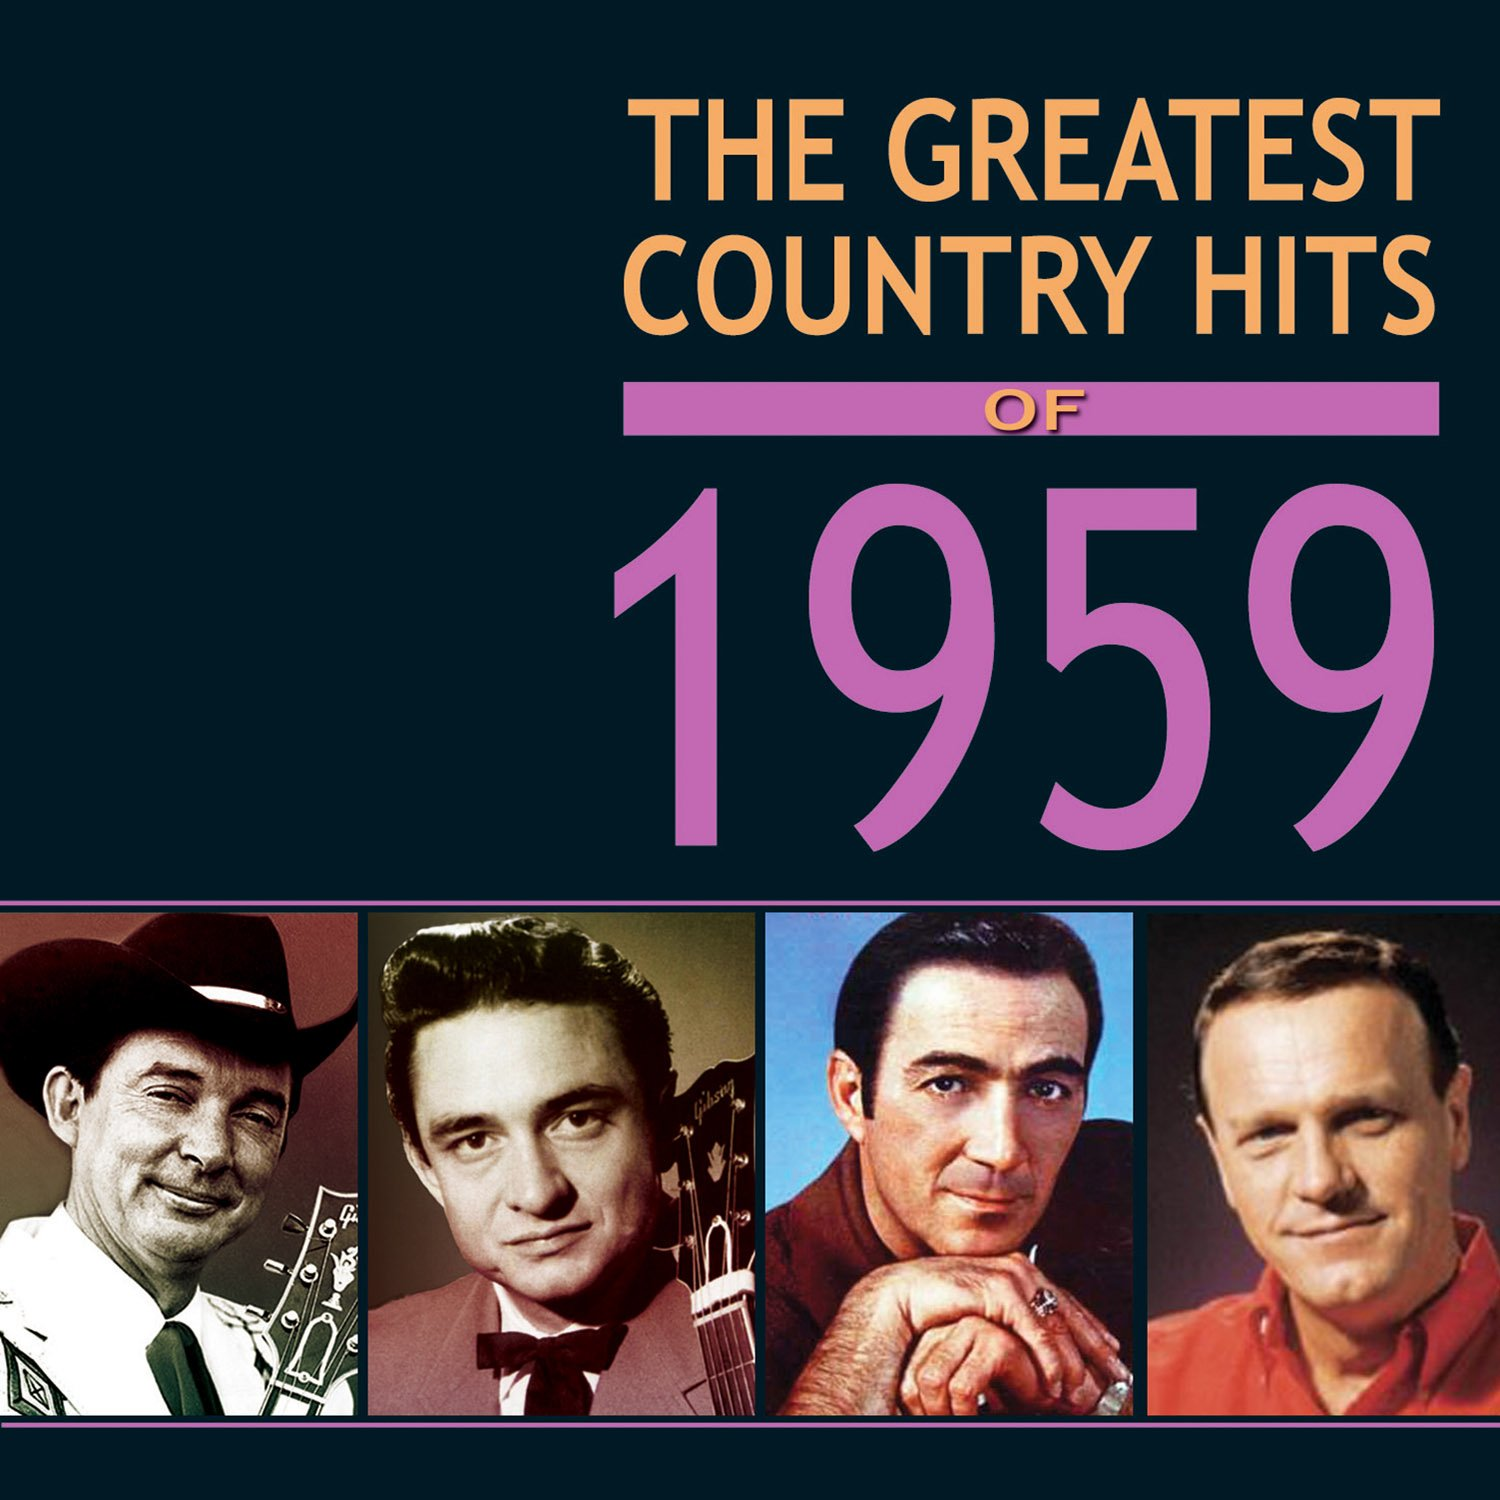 CD : VARIOUS ARTISTS - Greatest Country Hits Of 1959 / Various (4PC)